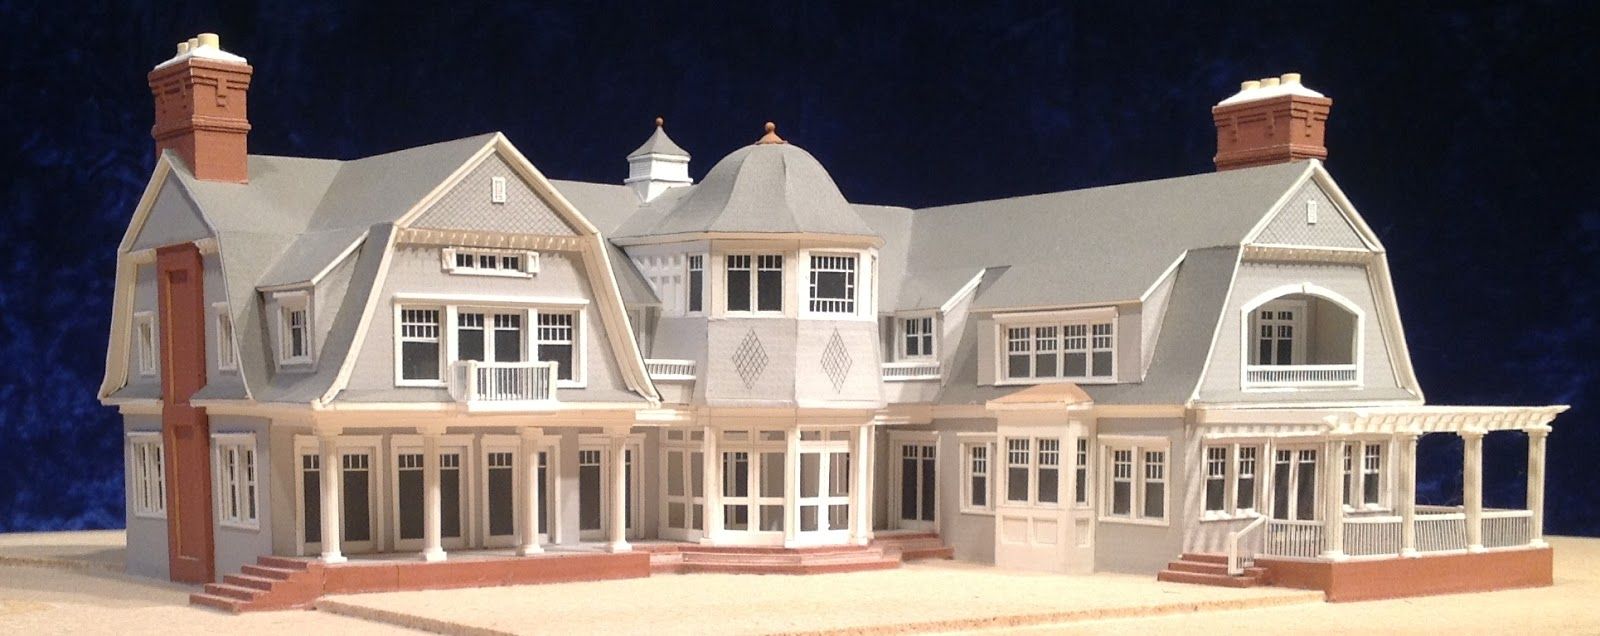 Houses of the hamptons for Model houses in new york